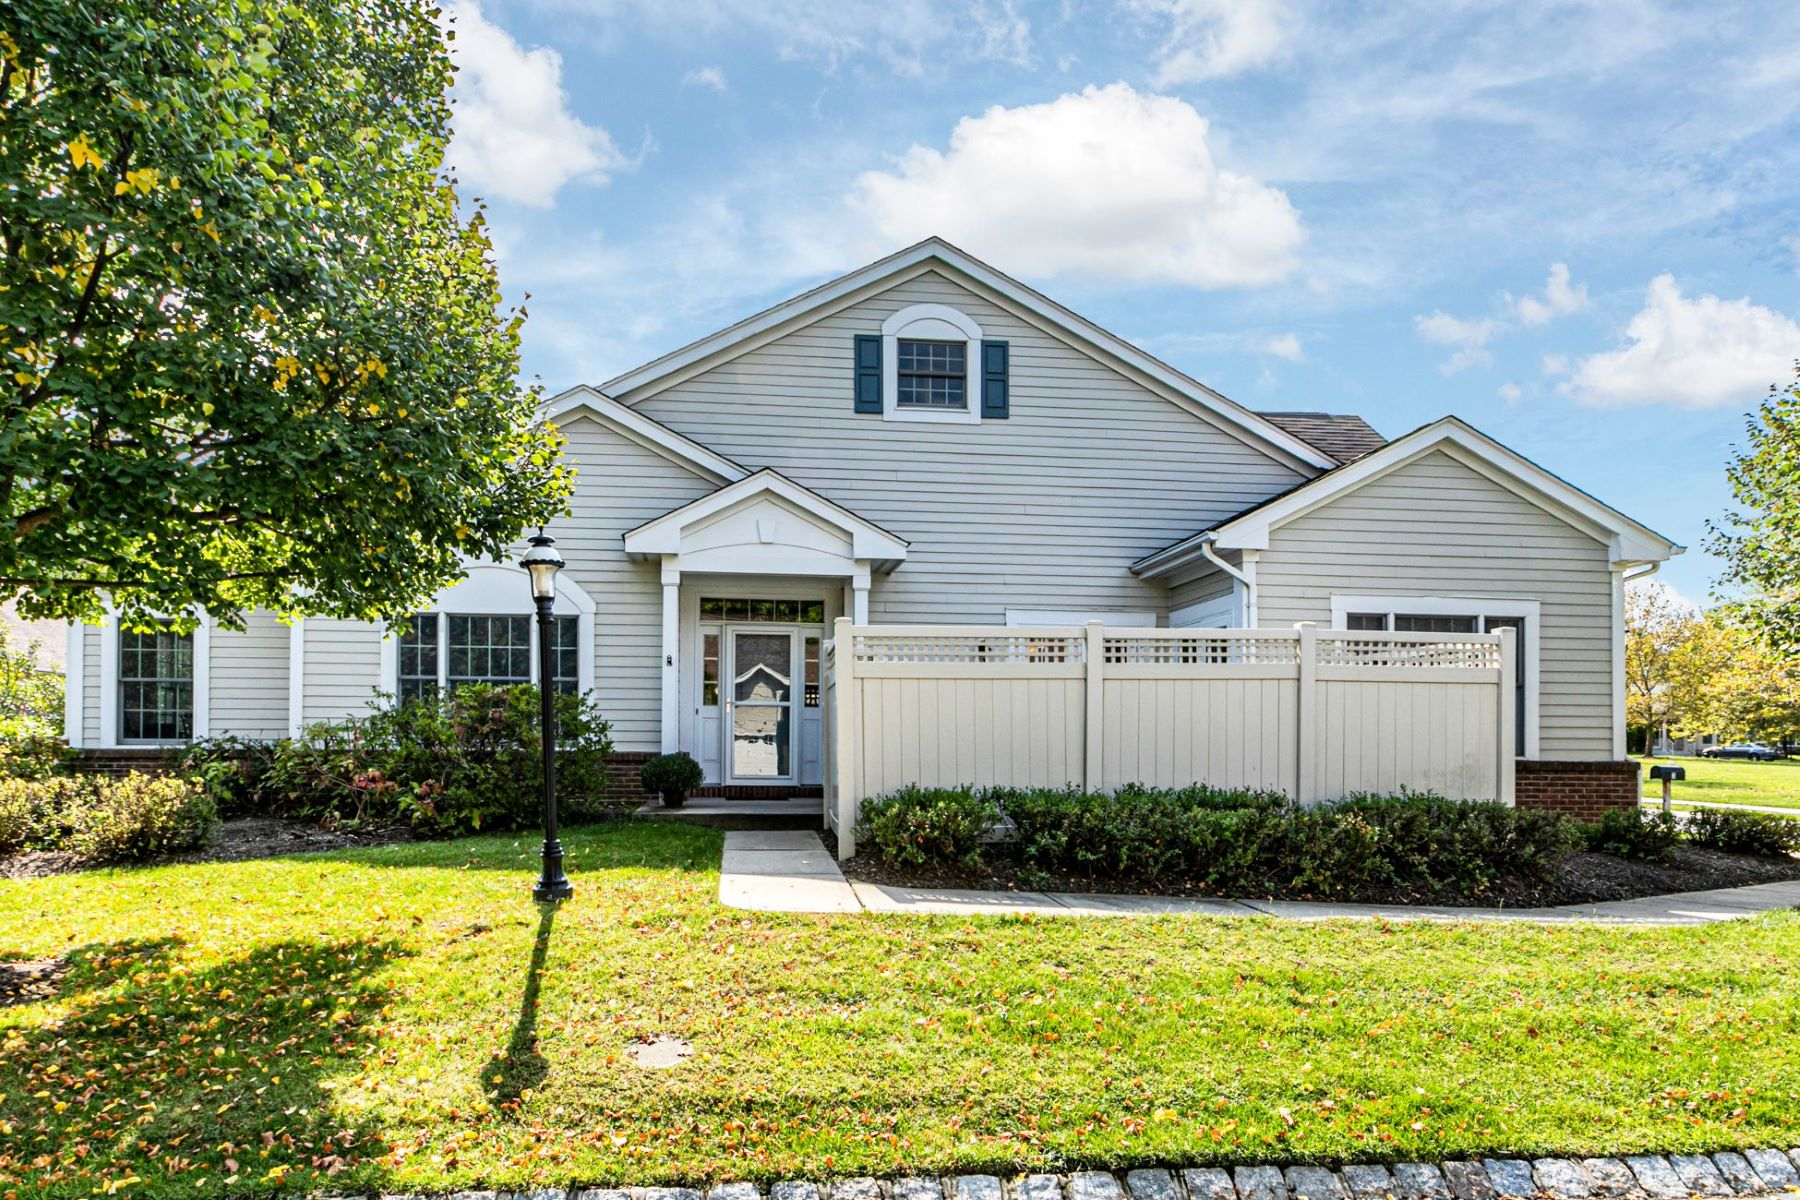 Super Sunny Oxford Model Boasts the Best Location 3 Jasmine Way, Princeton, New Jersey 08540 Hoa Kỳ